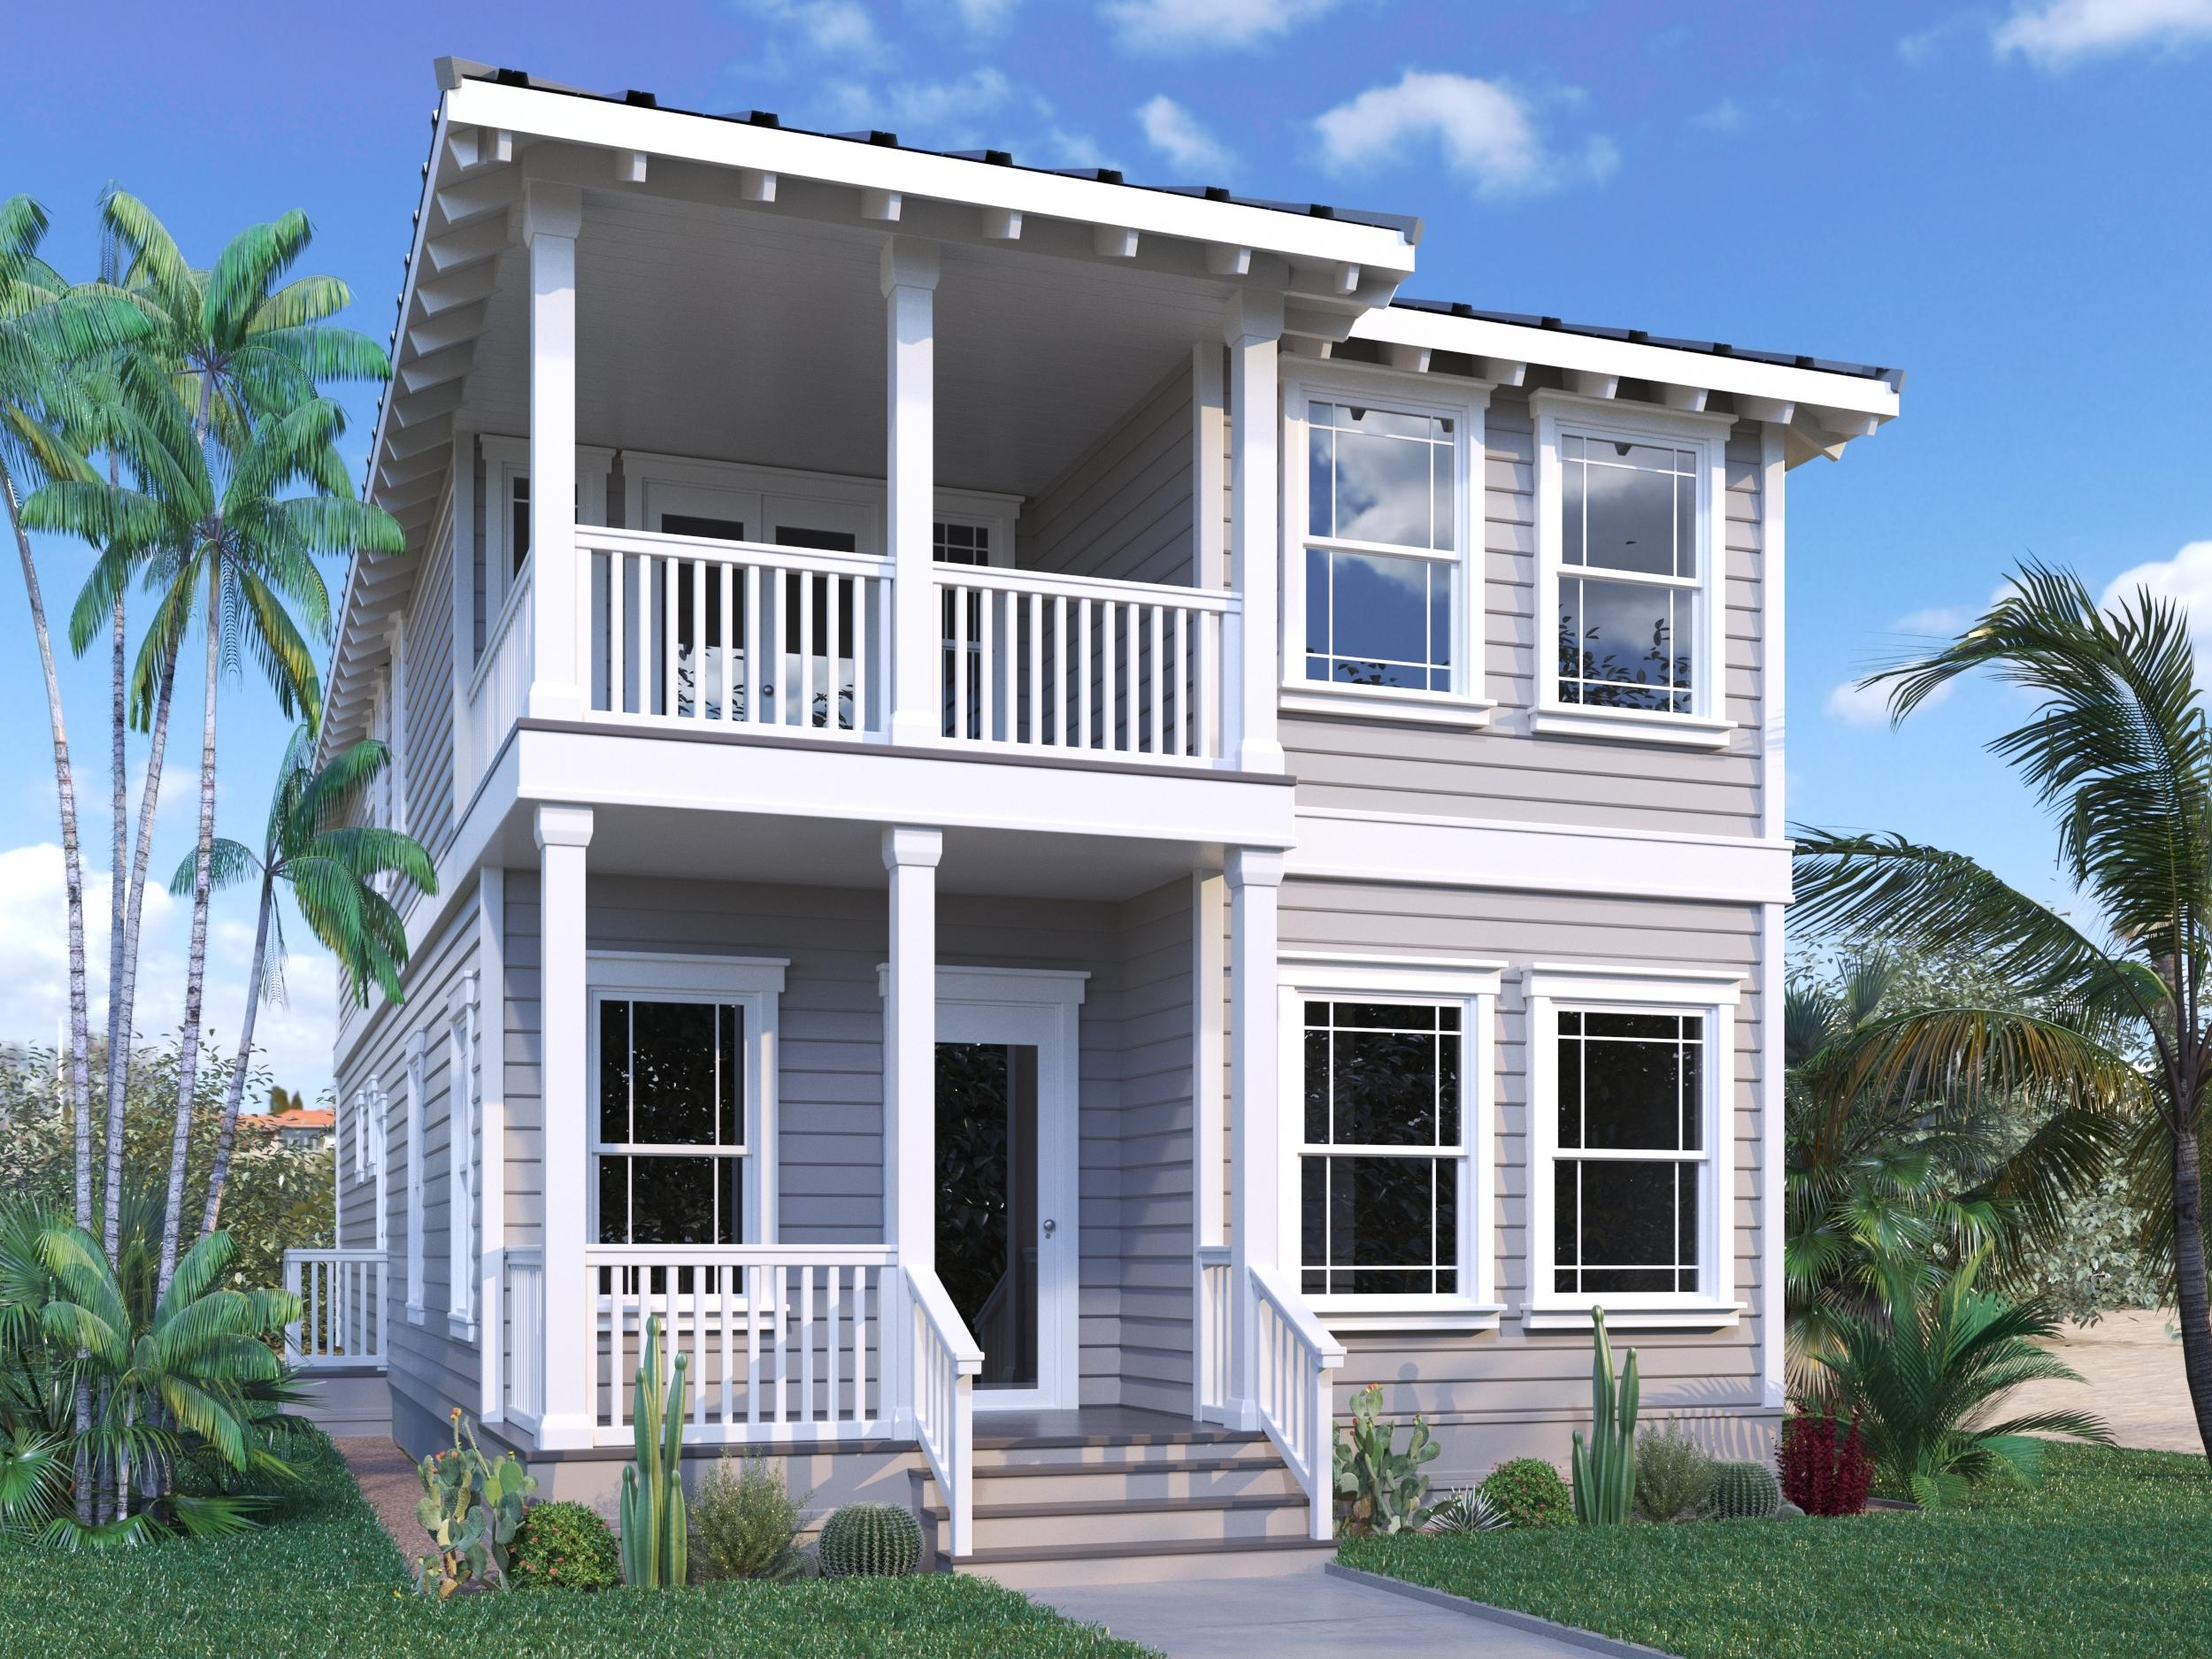 Currently under construction by Bay Custom Builders, this beautifully designed beach house has a gra